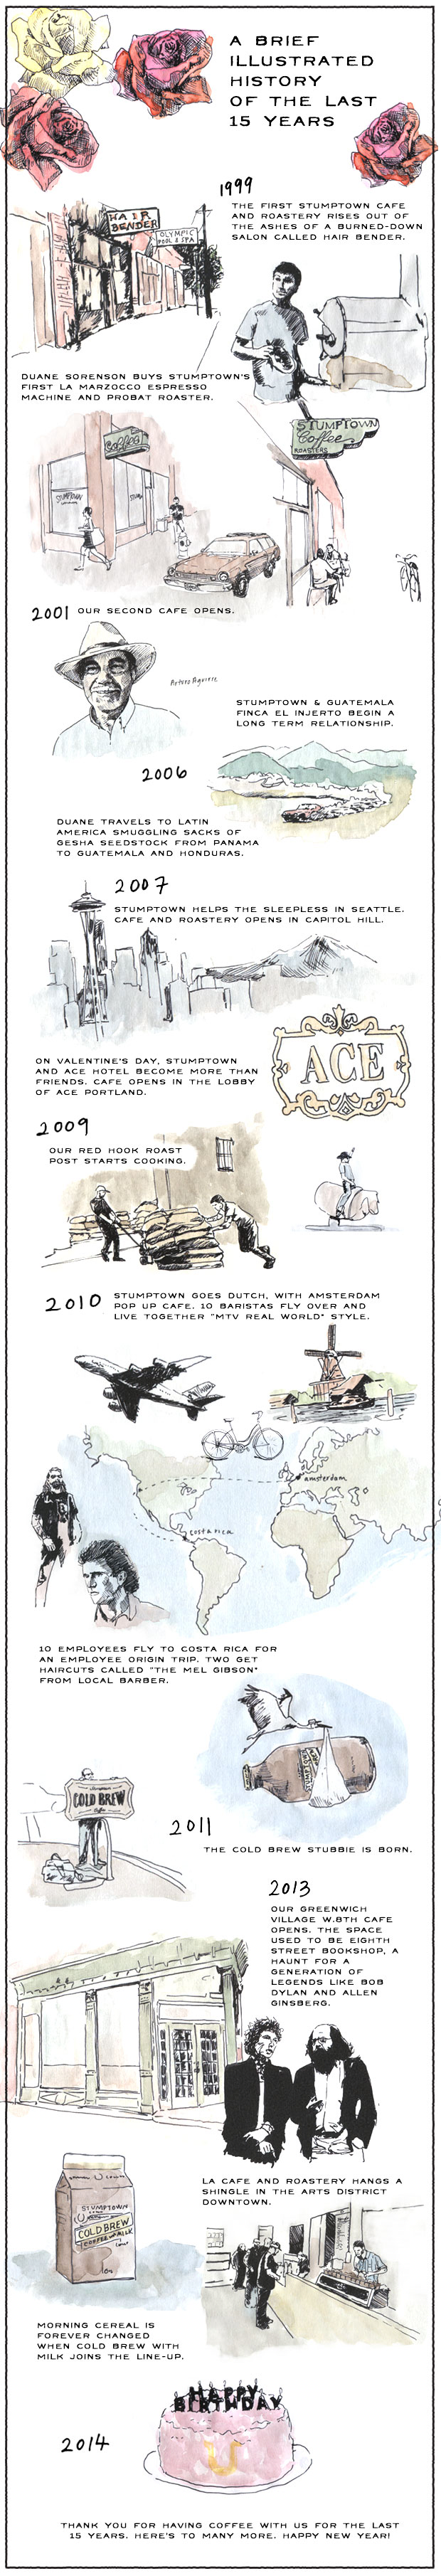 http://stumptowncoffee.com/brief-illustrated-history/